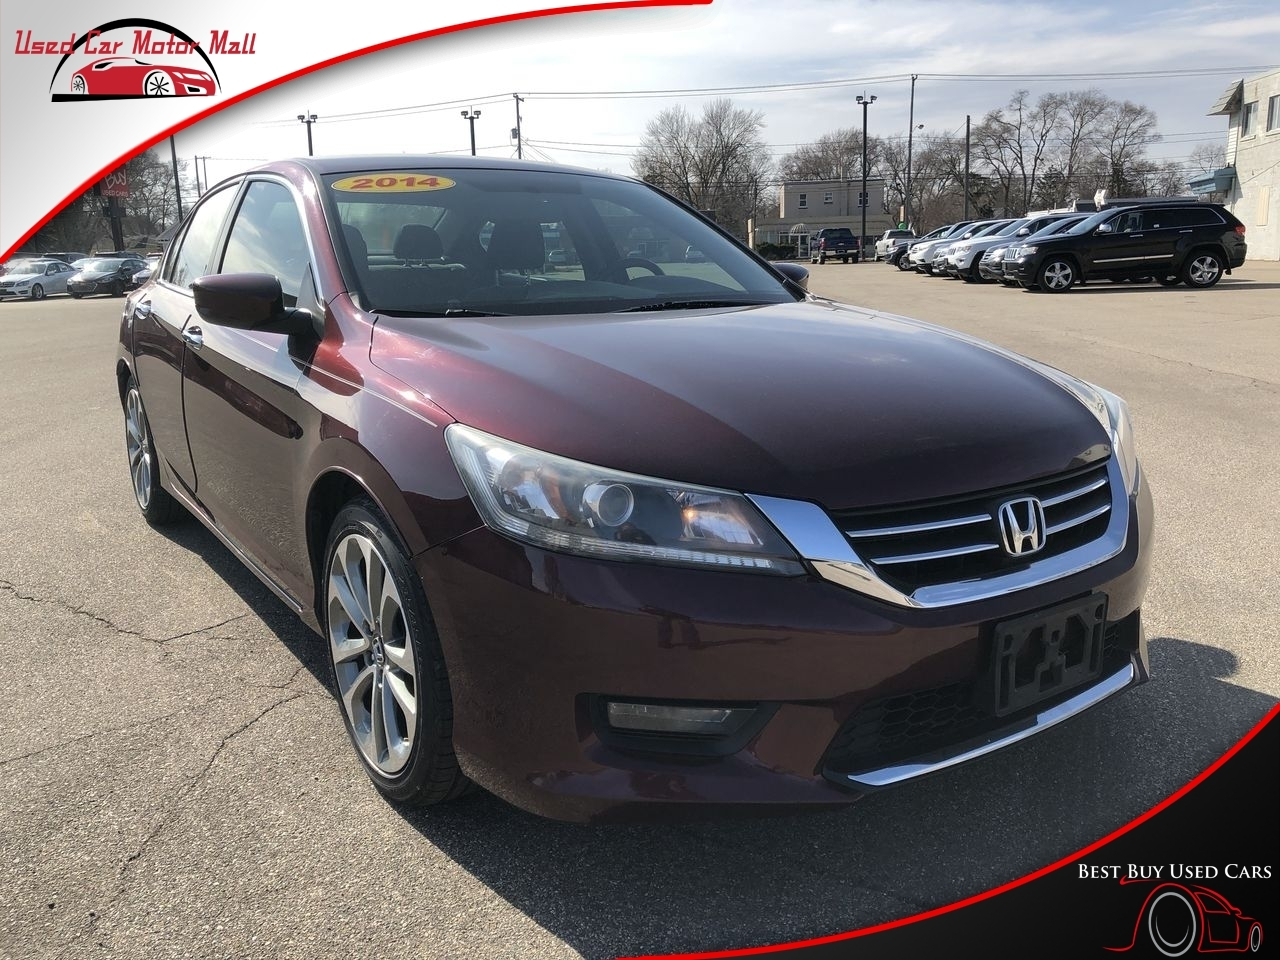 2012 Honda Accord LX Premium, 072428, Photo 1